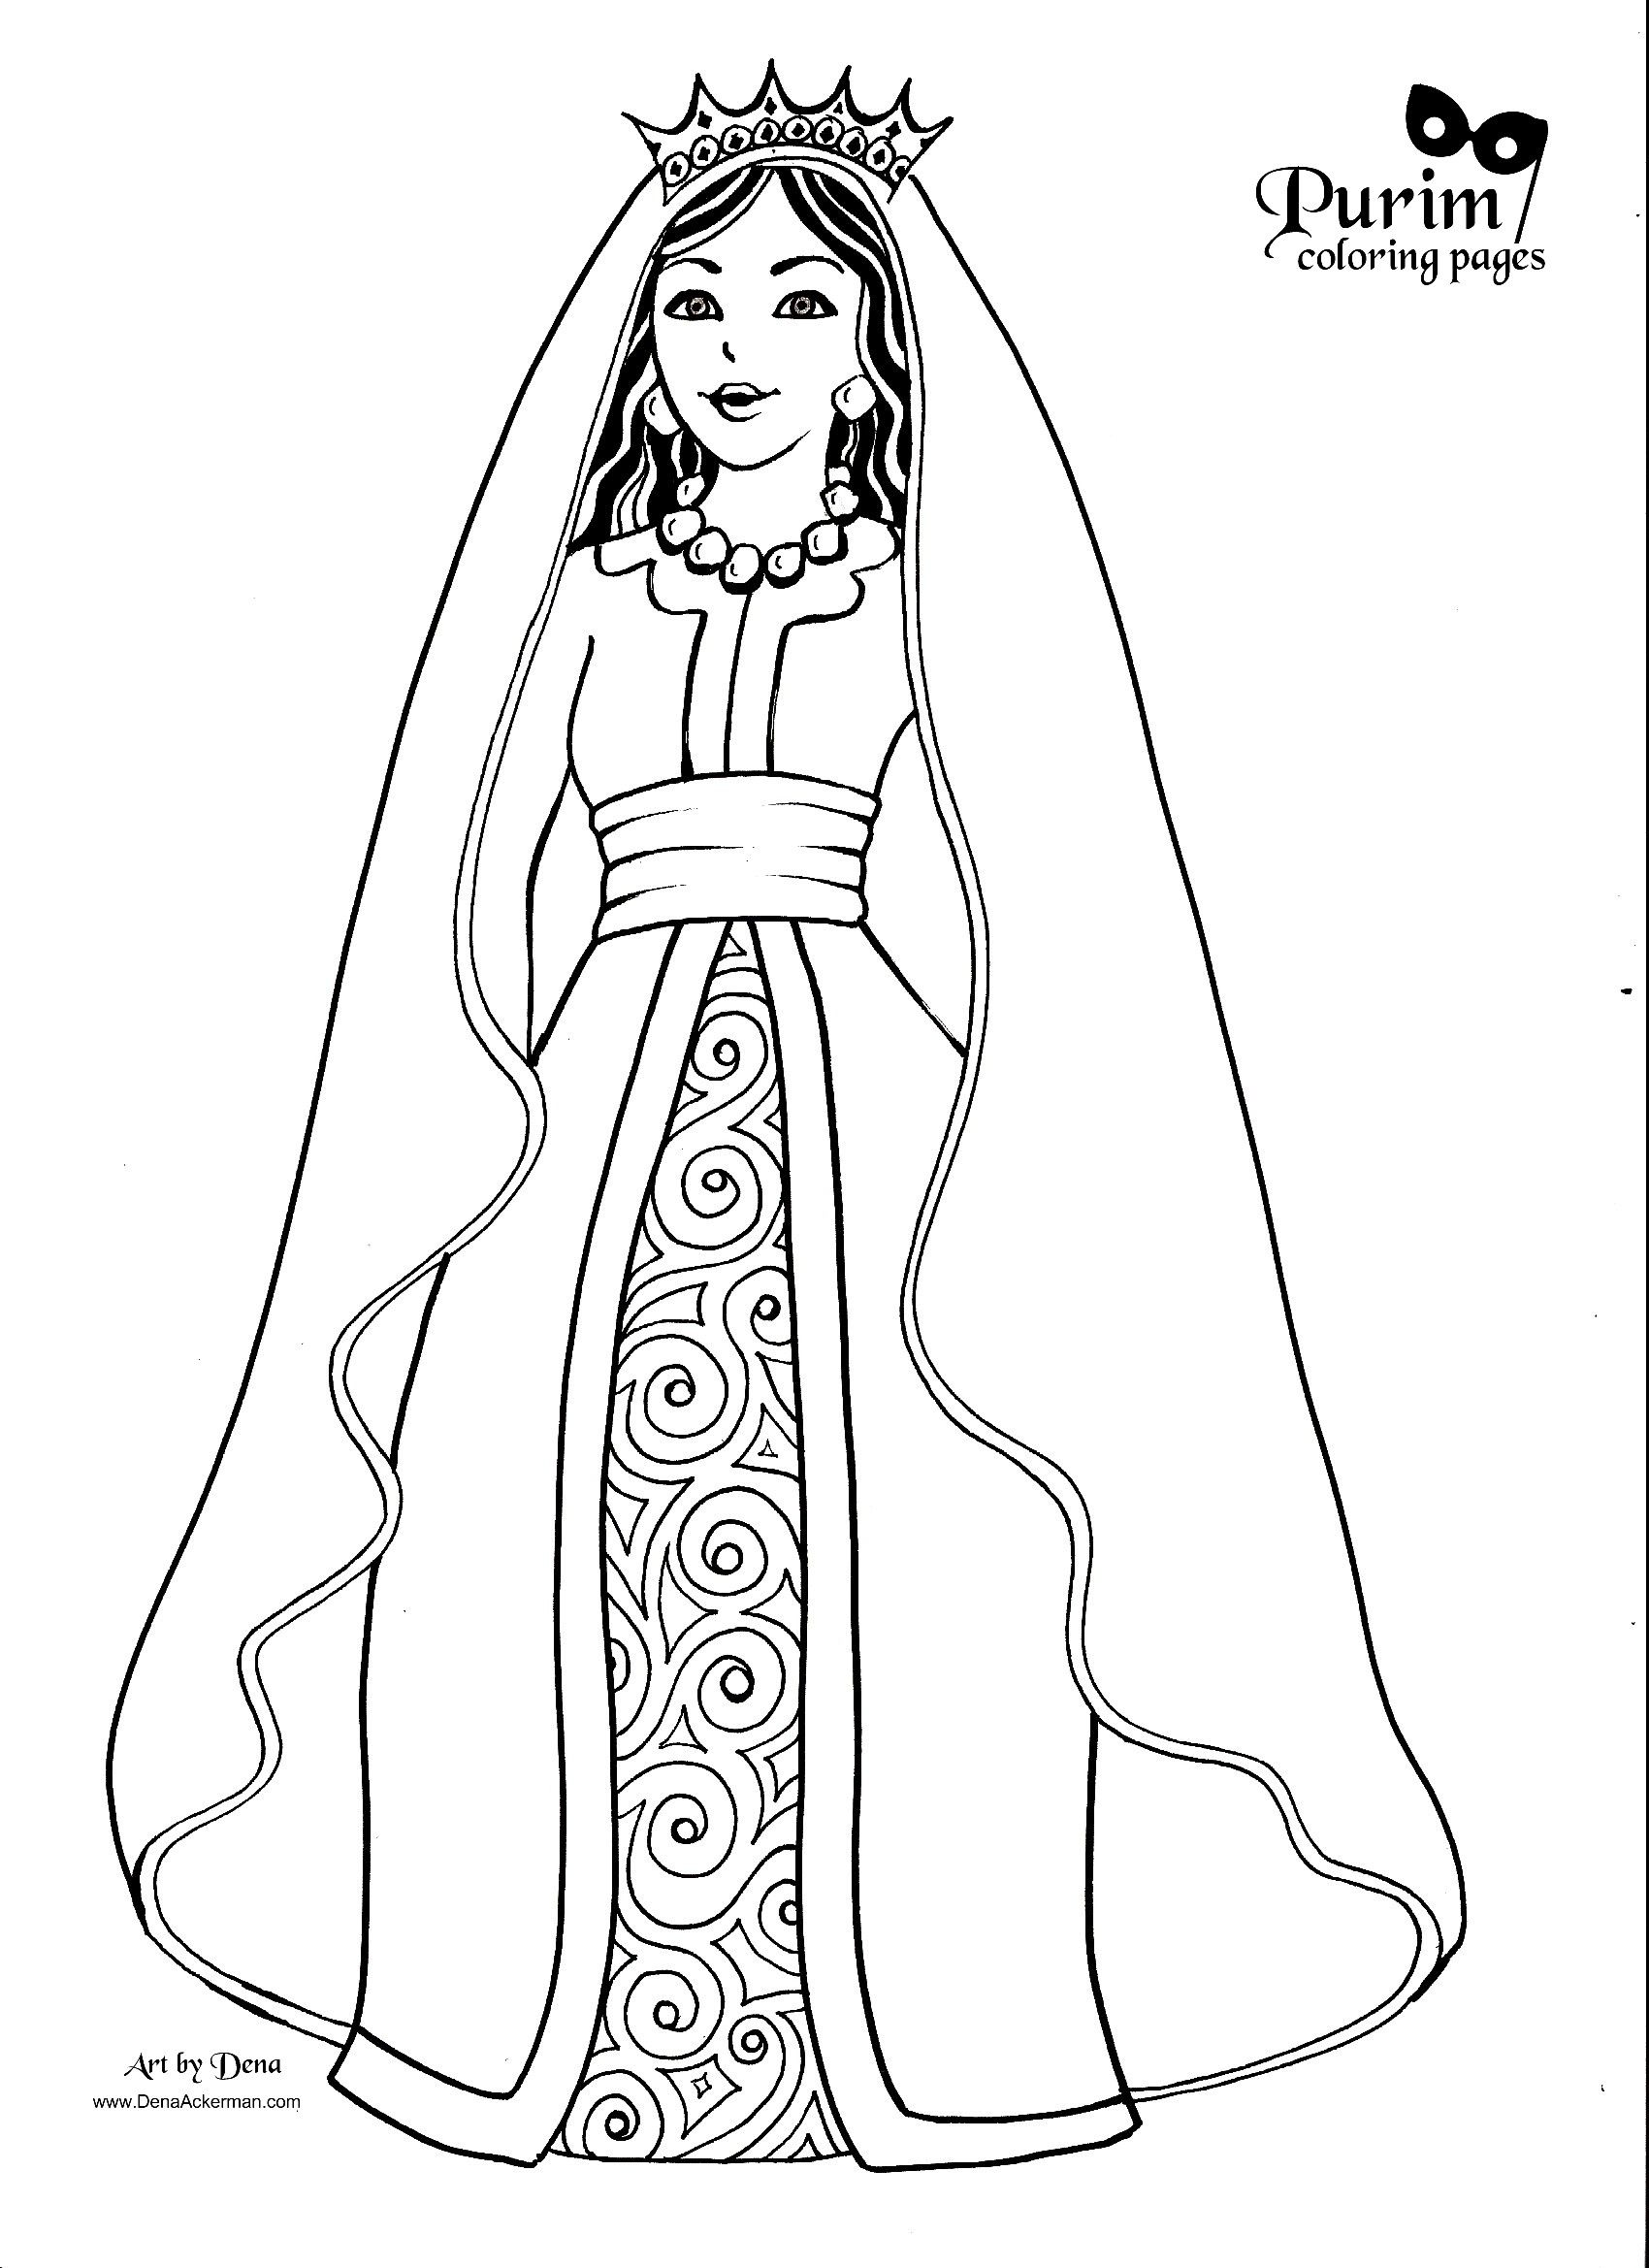 esther bible coloring pages esther wordt een koningin super coloring sunday school pages coloring bible esther